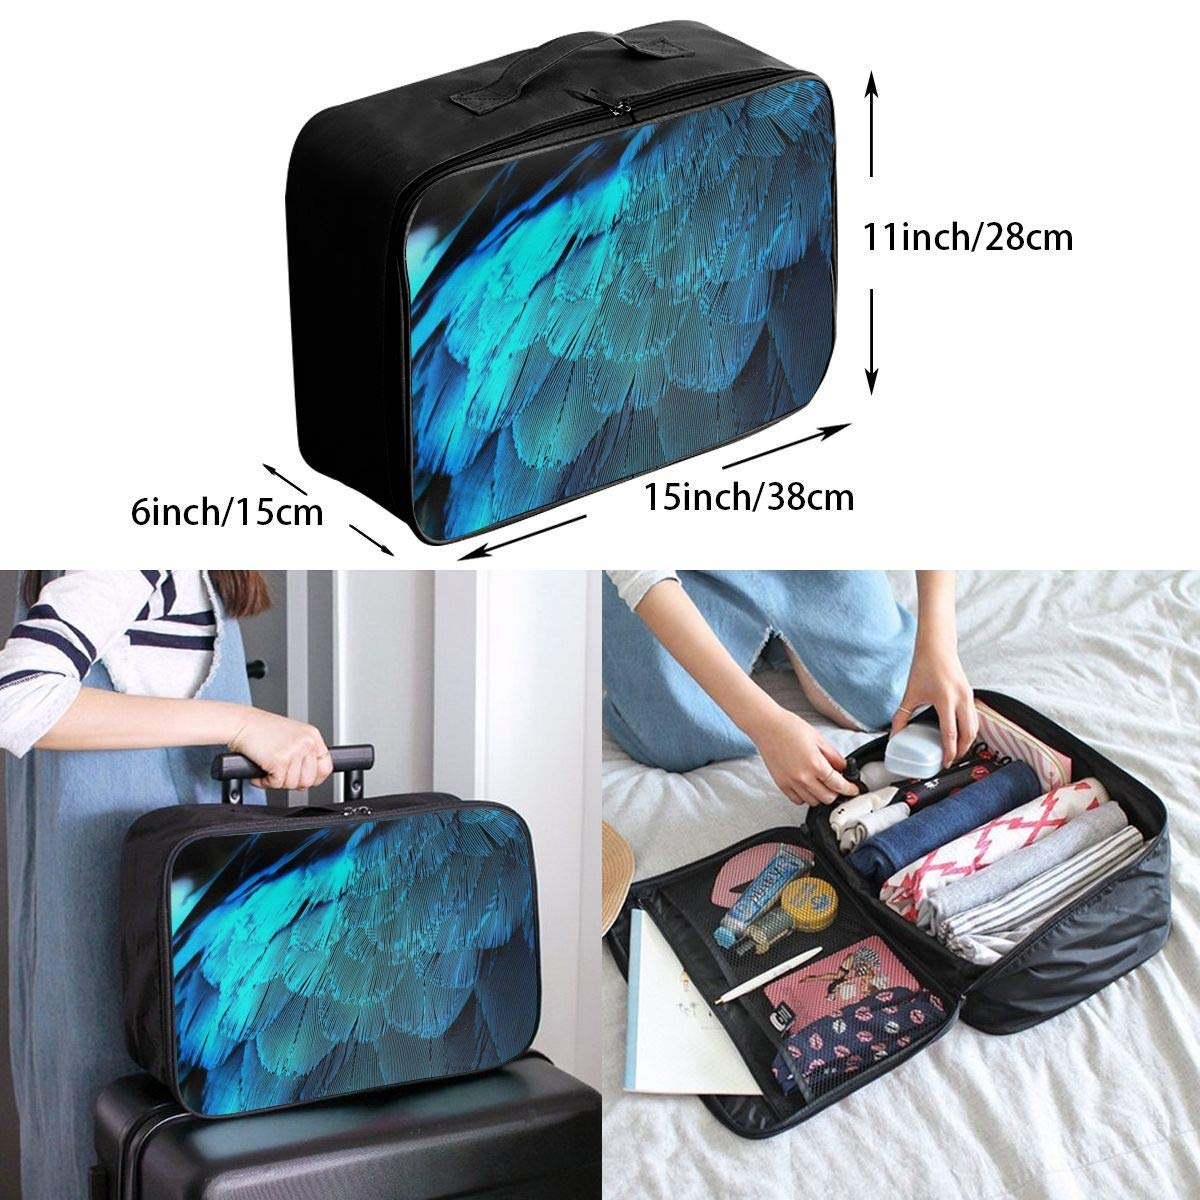 Lightweight Large Capacity Portable Duffel Bag for Men /& Women Blue Feathers Travel Duffel Bag Backpack JTRVW Luggage Bags for Travel